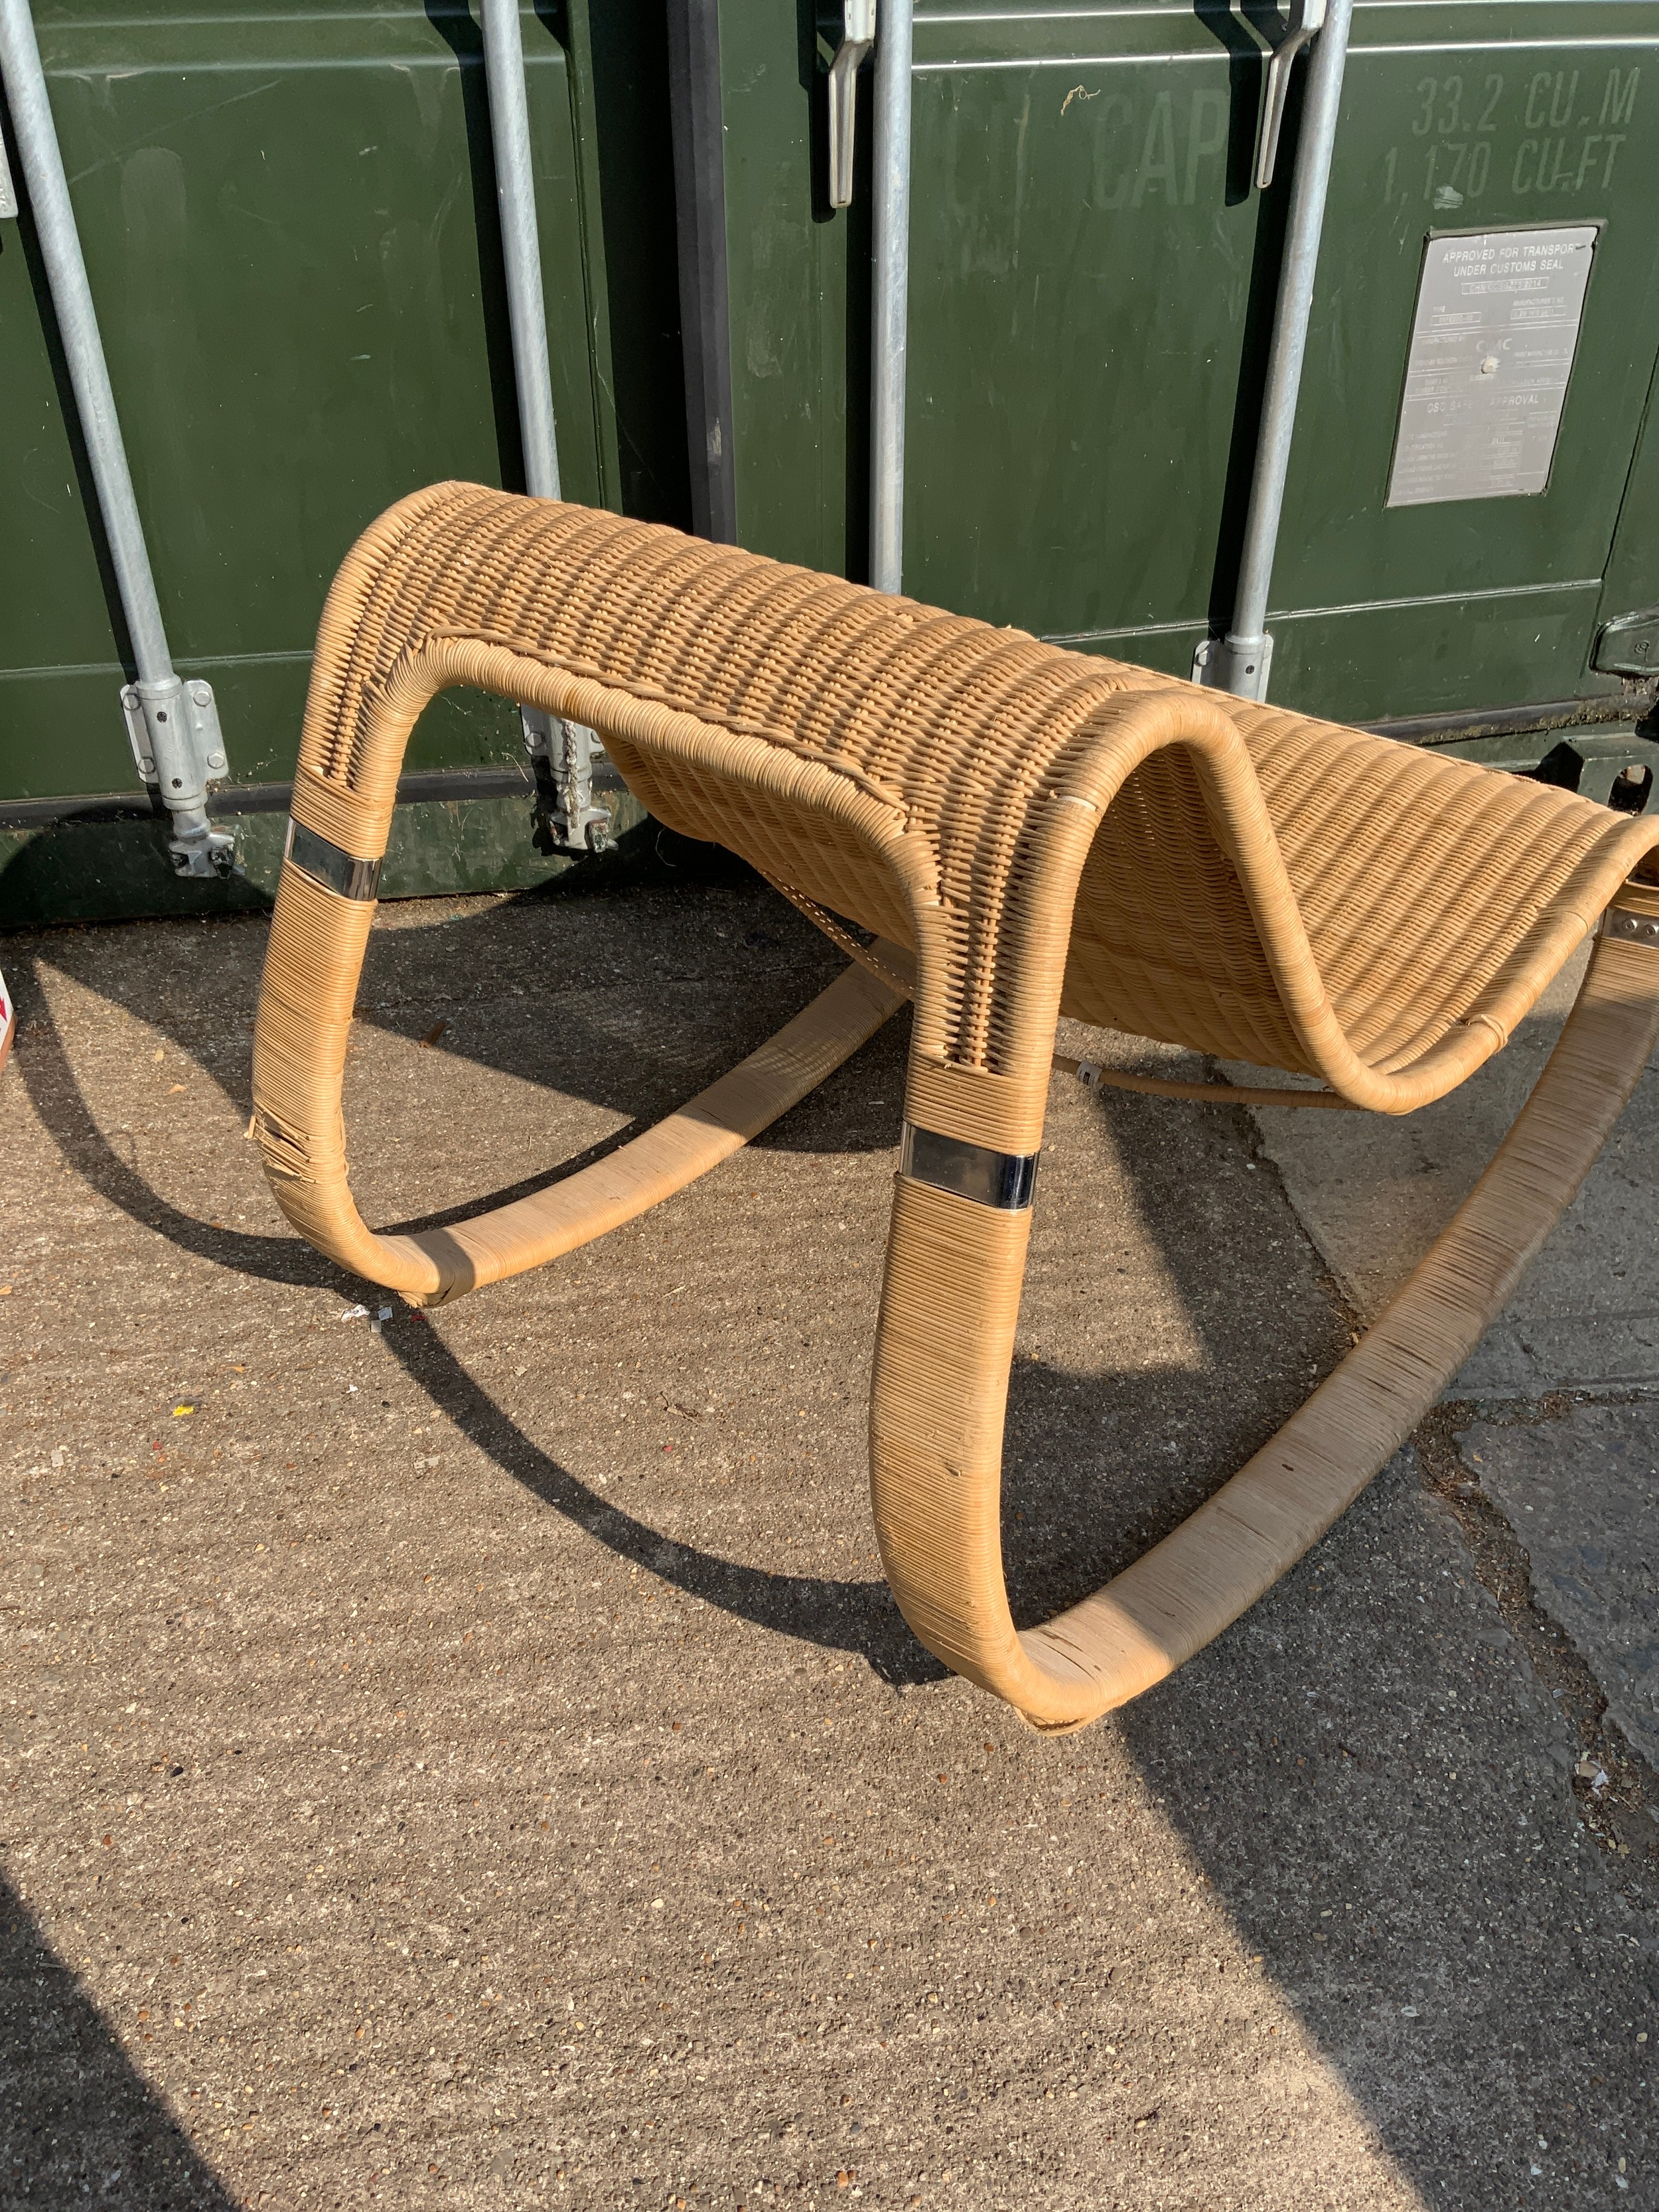 Rattan Rocking Chair - Image 2 of 2